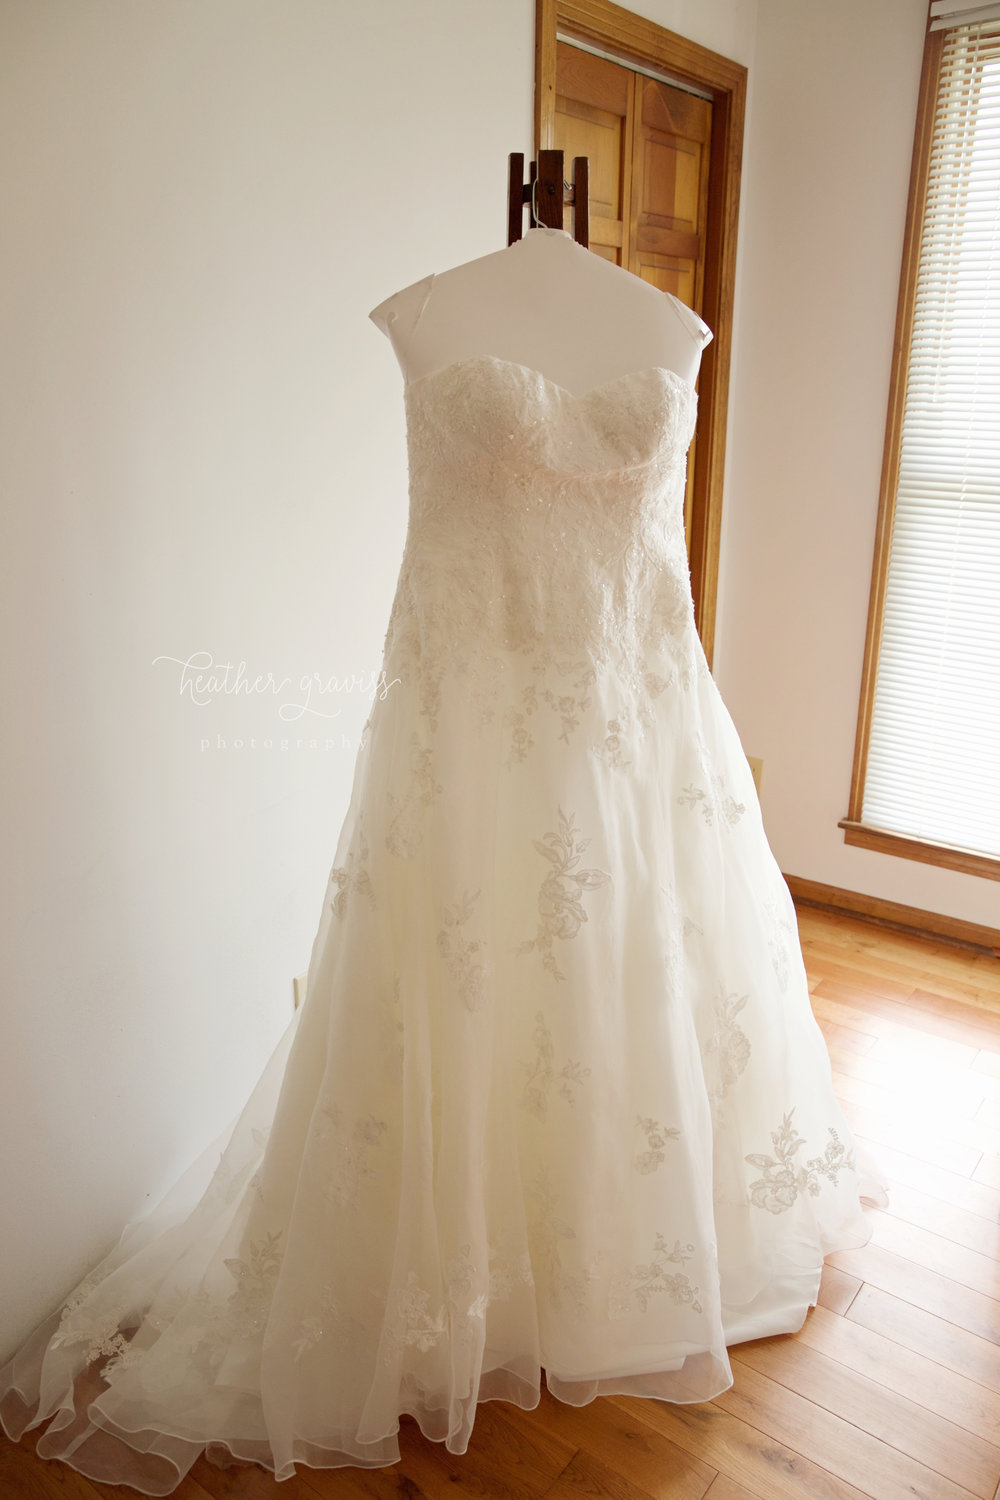 2 wedding-dress.jpg